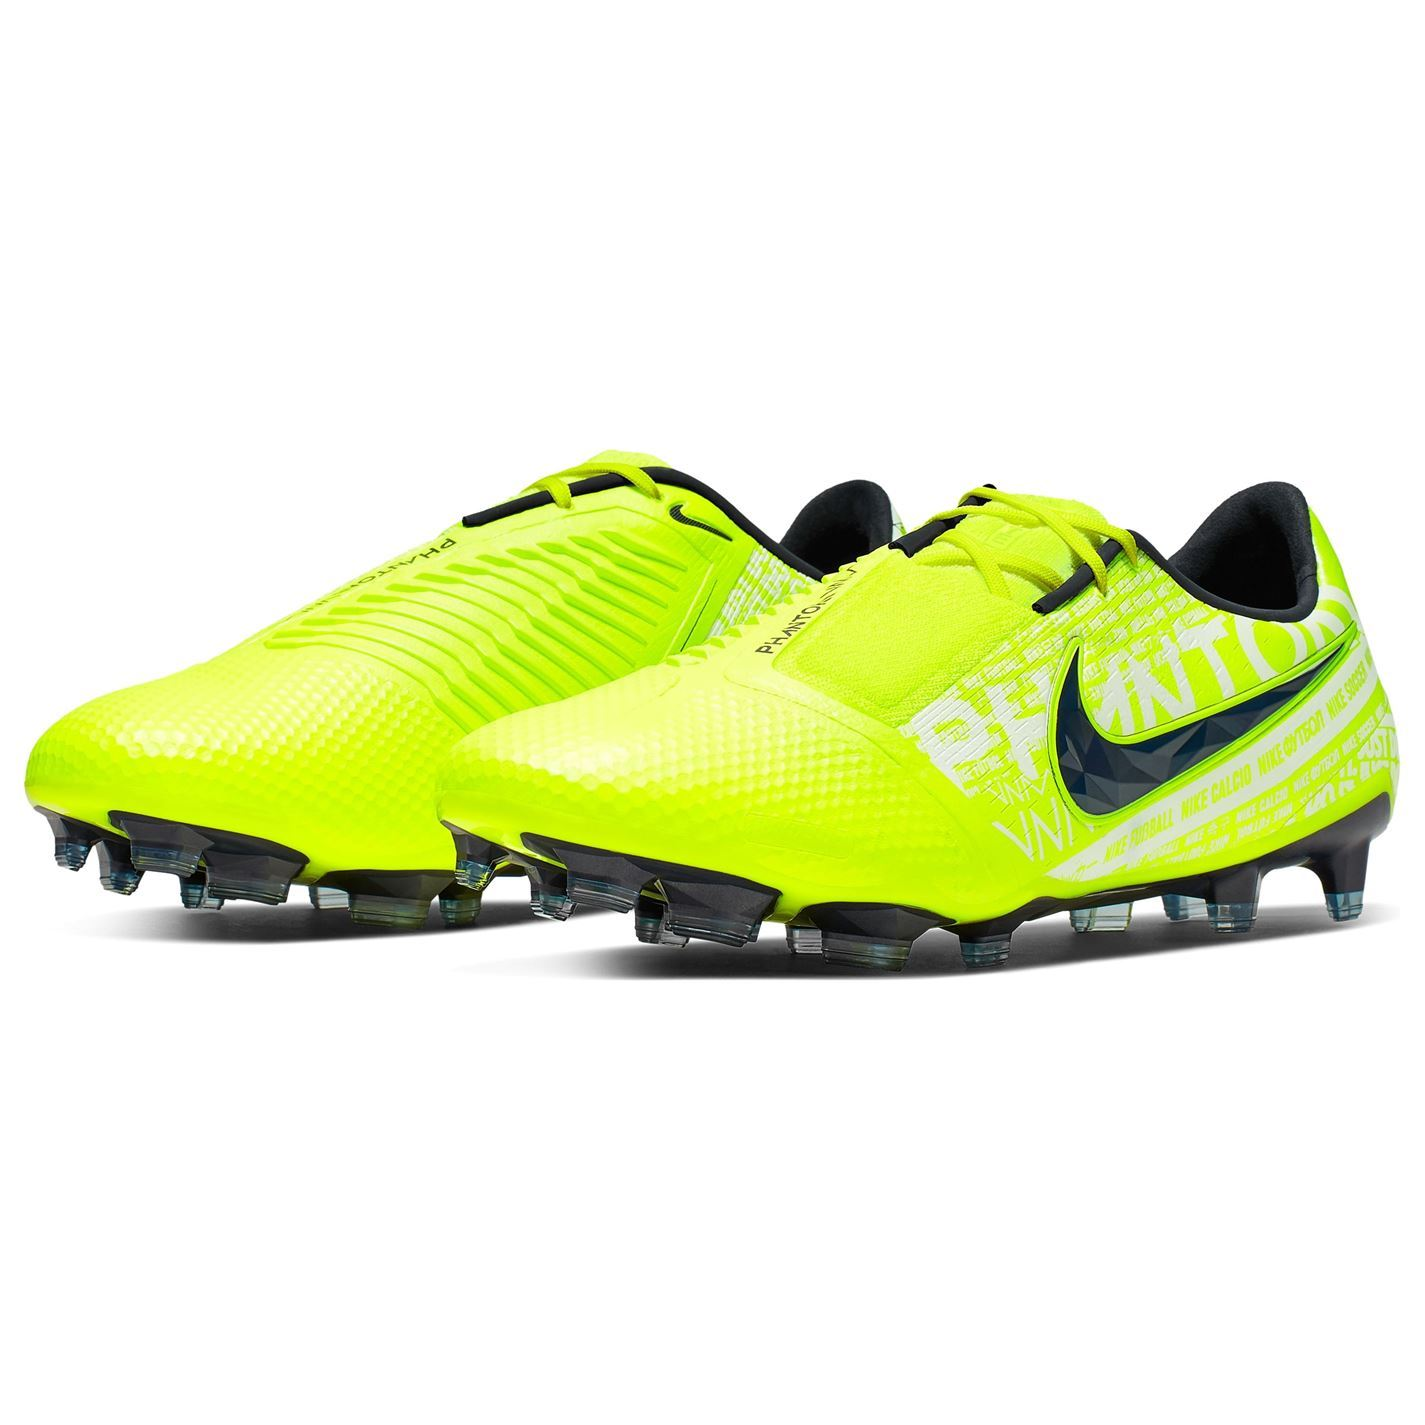 Nike-Phantom-Venom-Elite-Homme-FG-Firm-Ground-Chaussures-De-Football-Chaussures-de-foot-crampons miniature 17